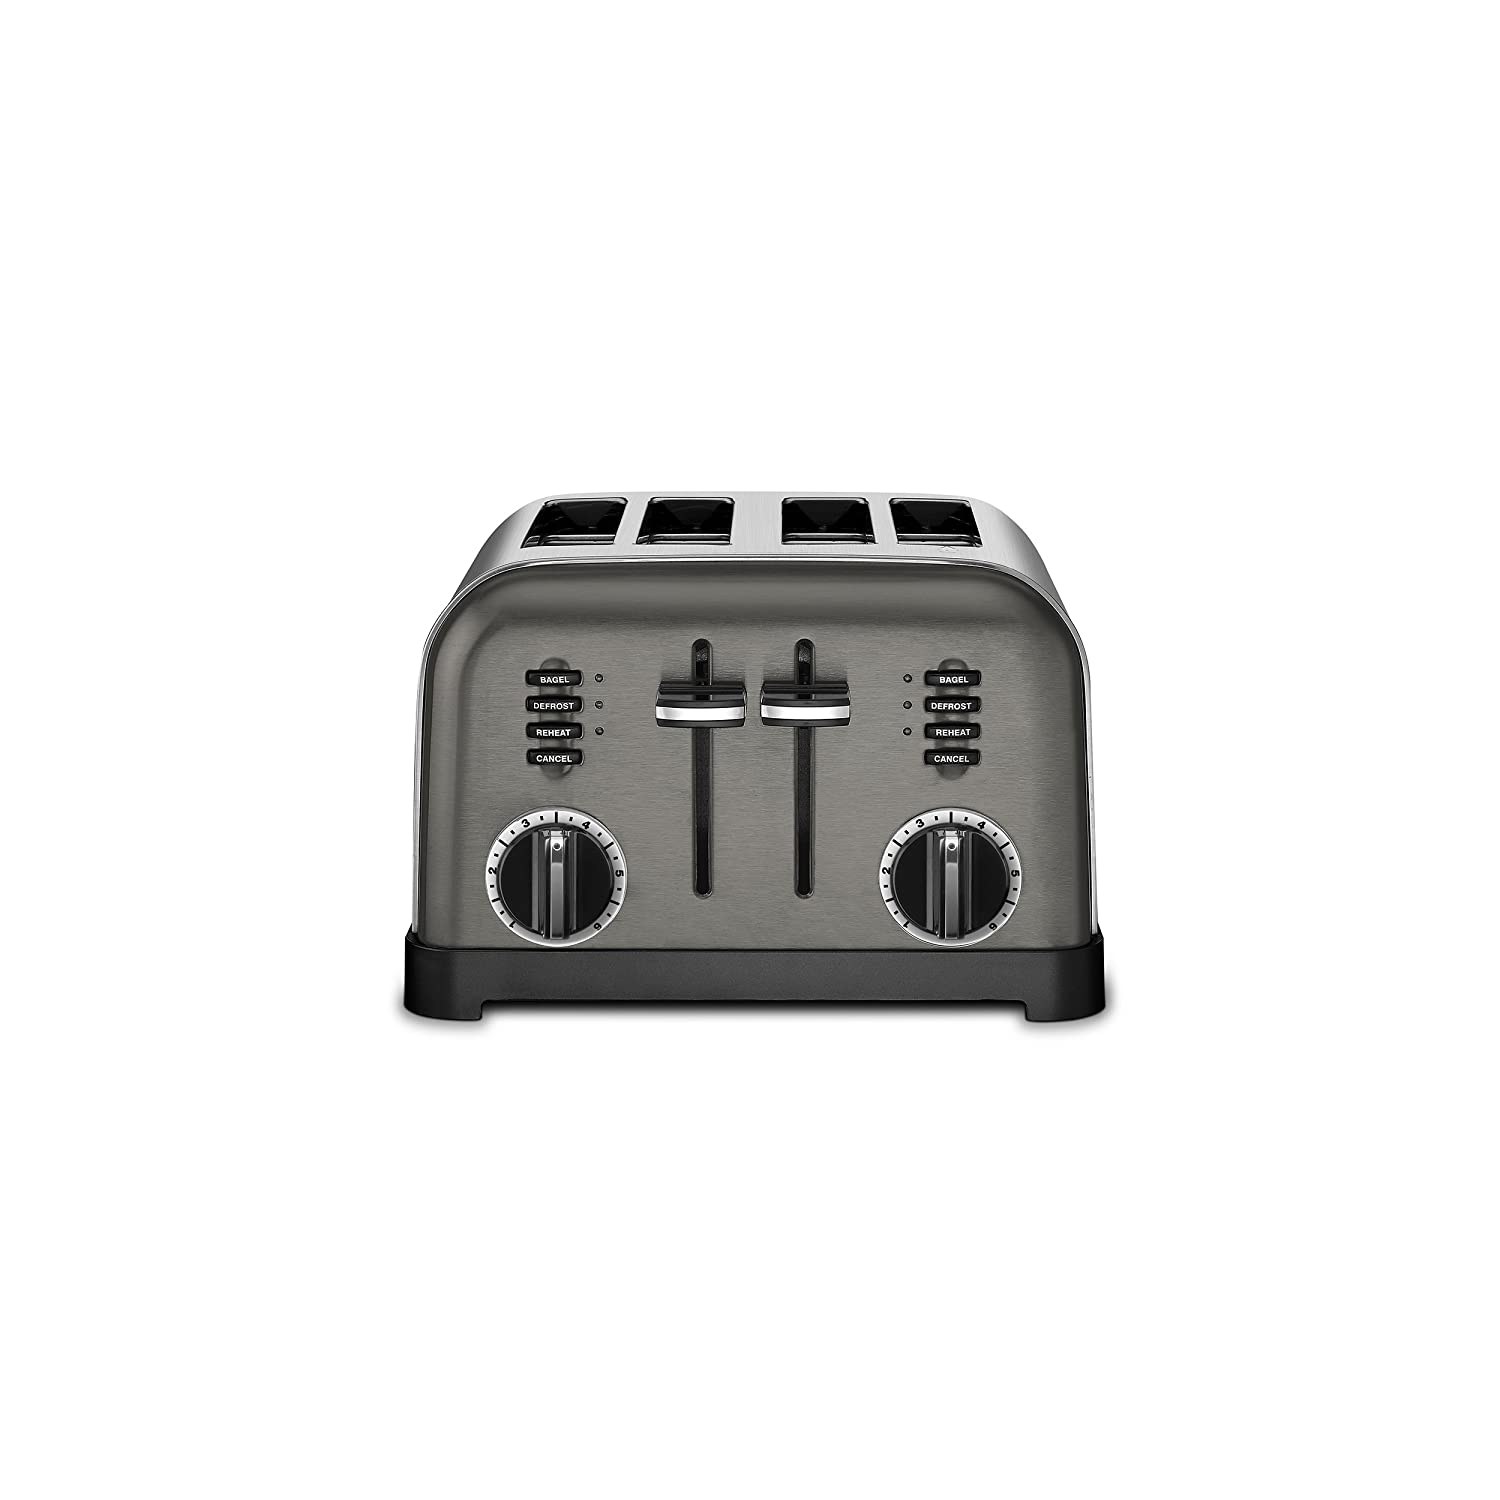 Cuisinart CPT-180BKS Metal Classic Toaster 4-Slice Black Stainless